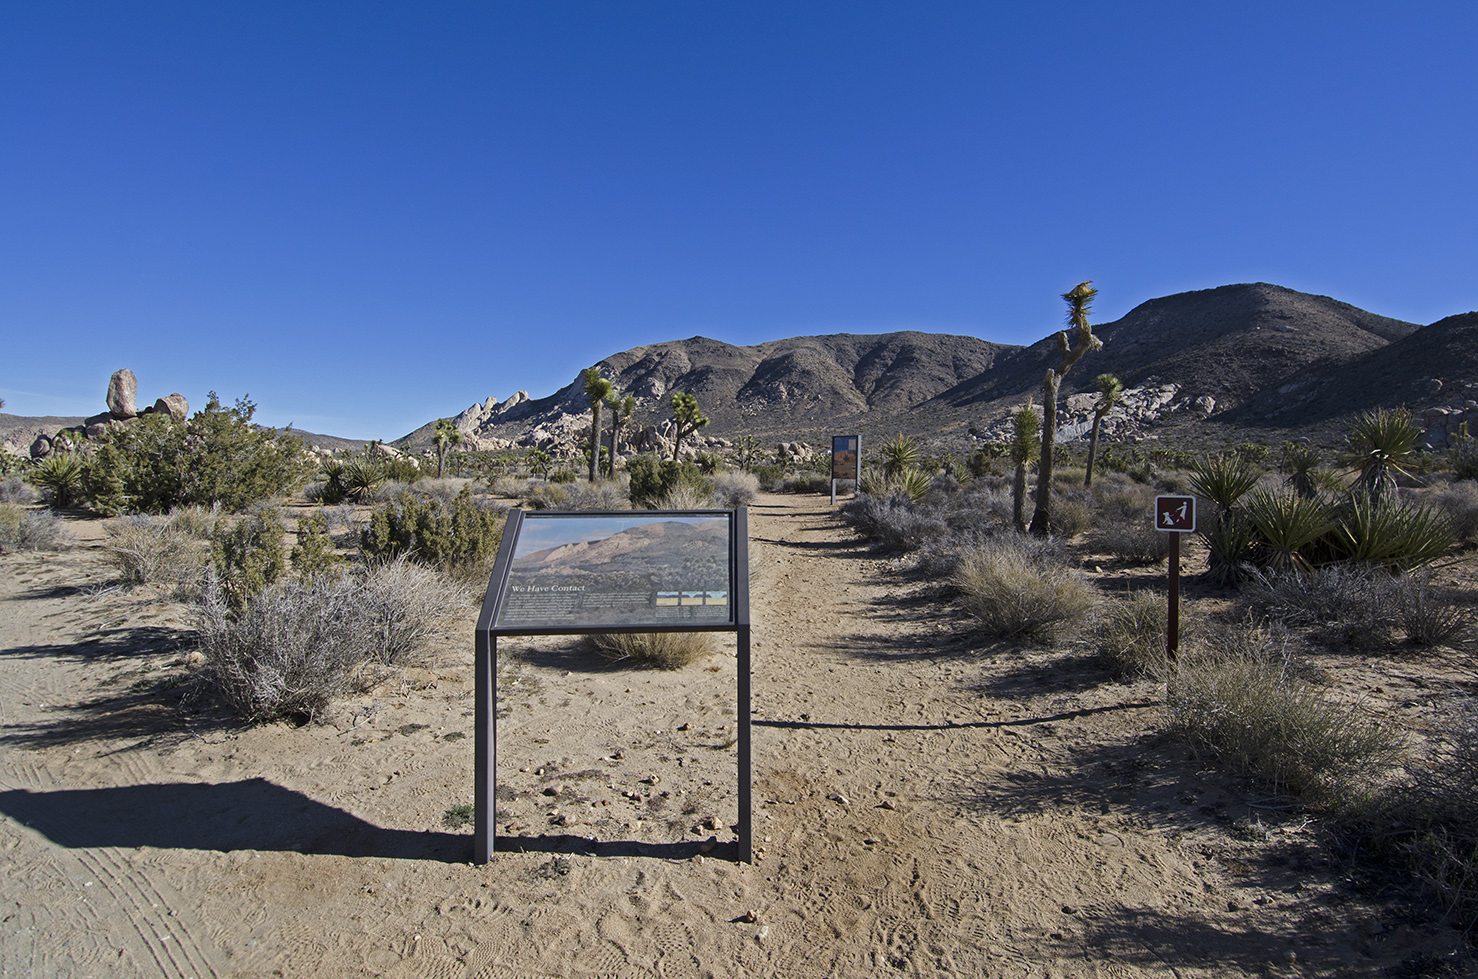 Trailhead from Ryan Campground